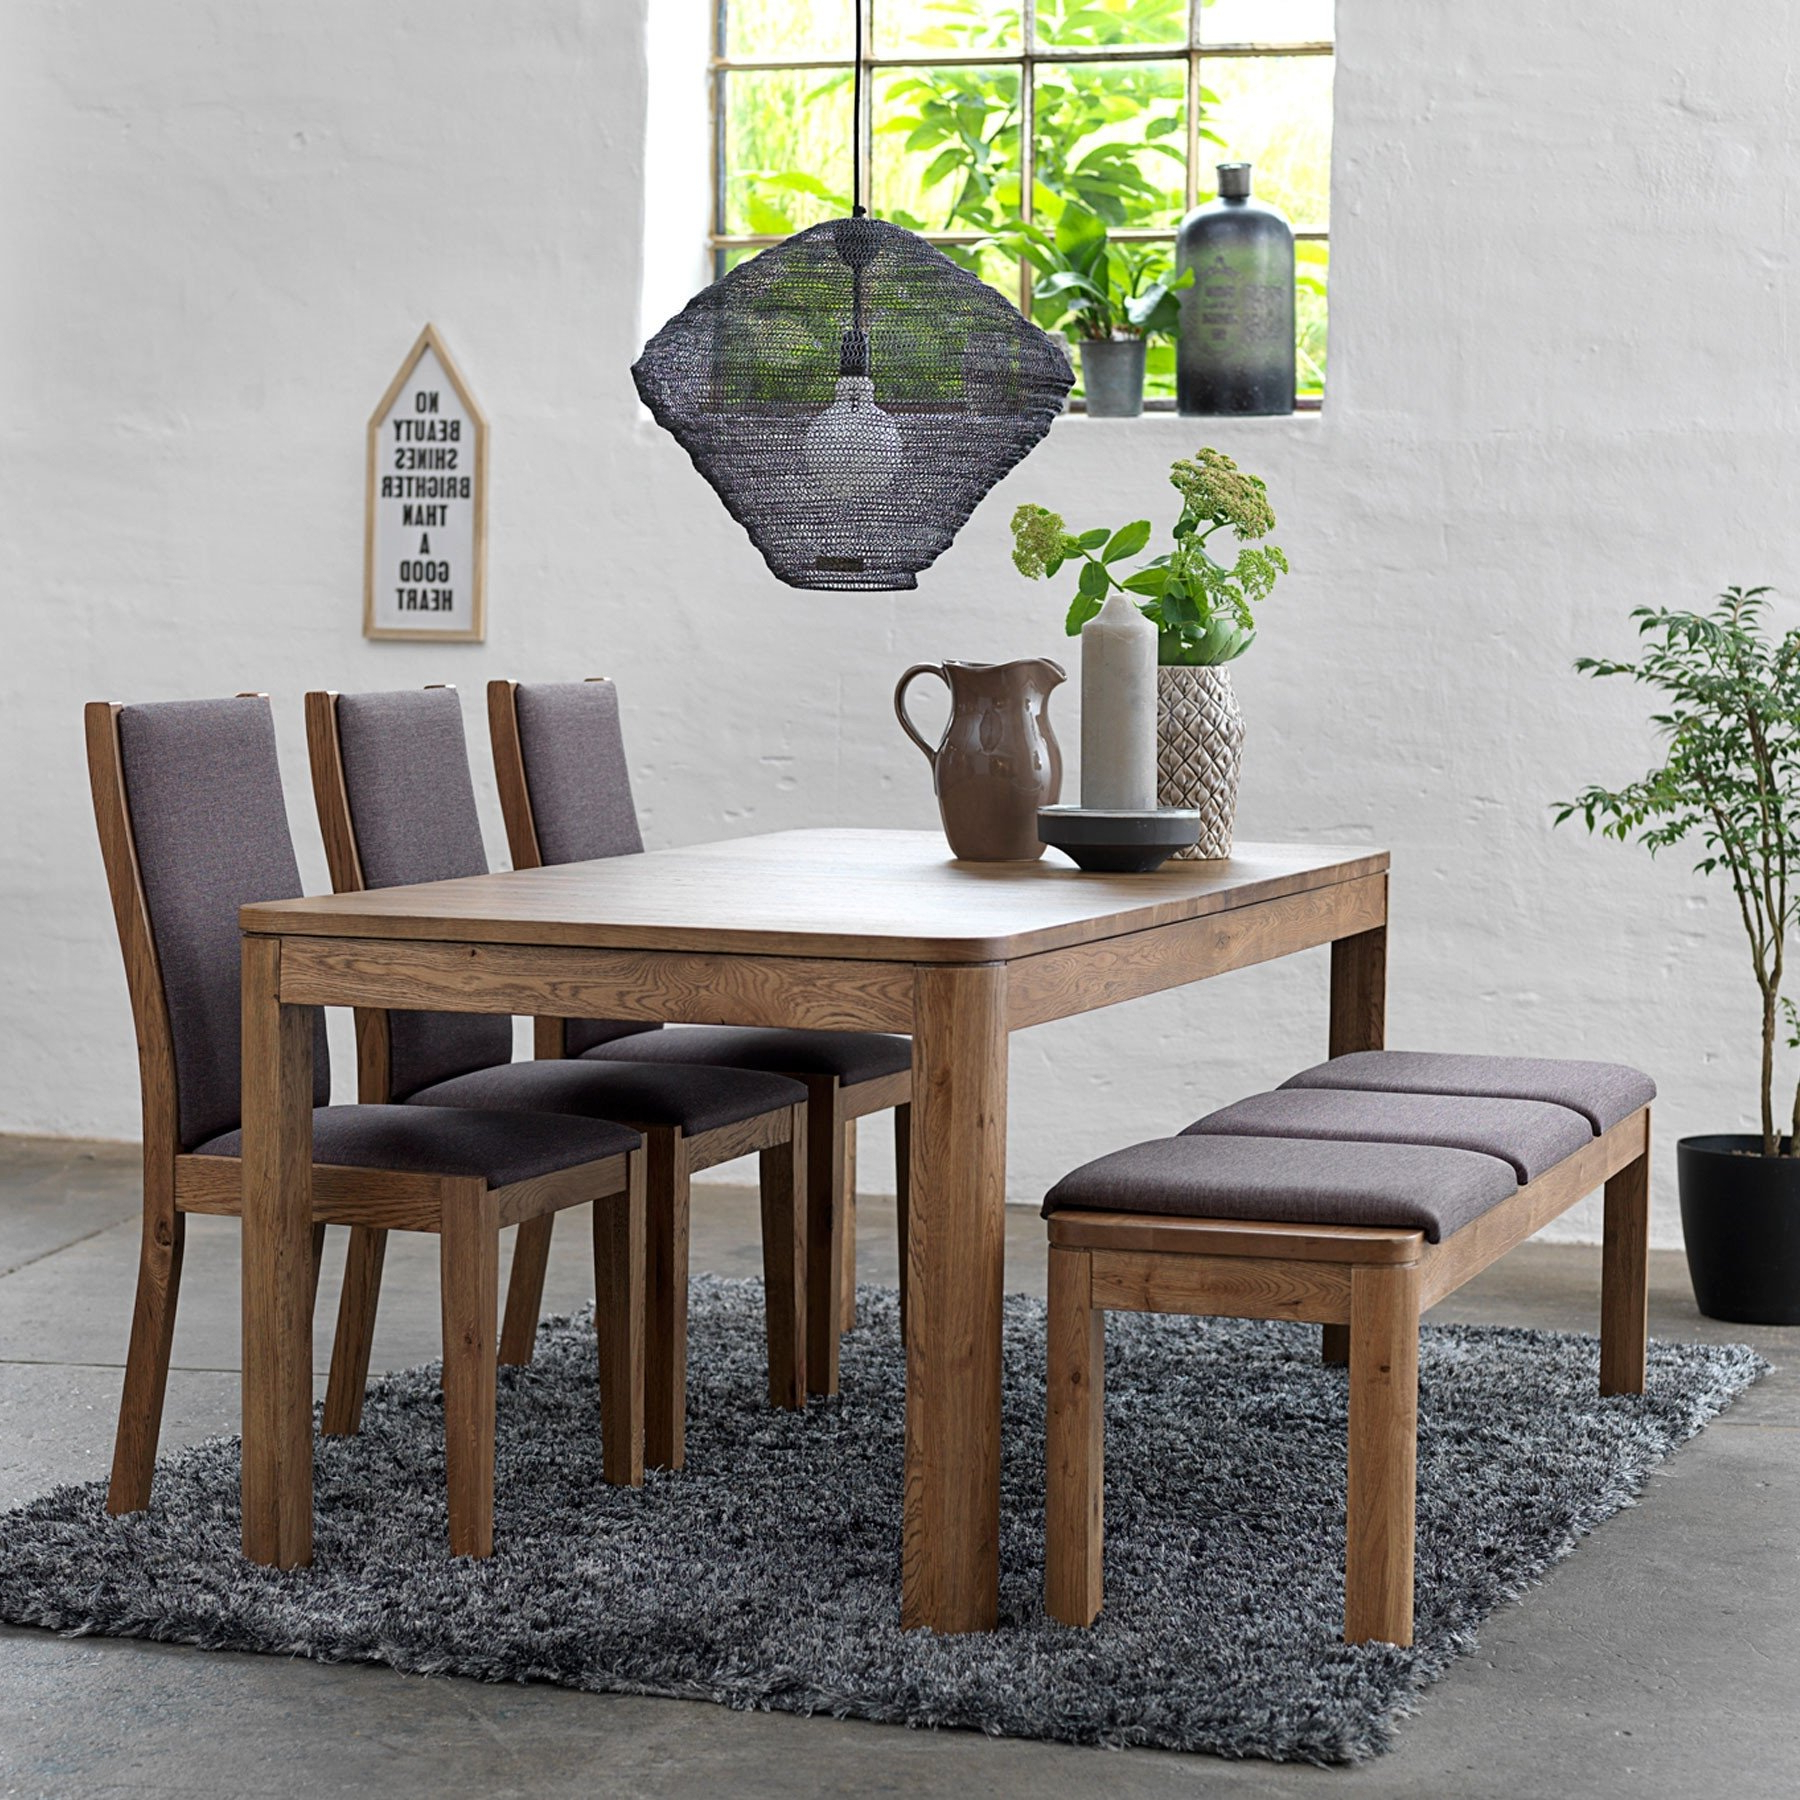 Widely Used 50+ Dining Table With Bench You'll Love In 2020 – Visual Hunt Pertaining To Thick White Marble Slab Dining Tables With Weathered Grey Finish (View 25 of 25)